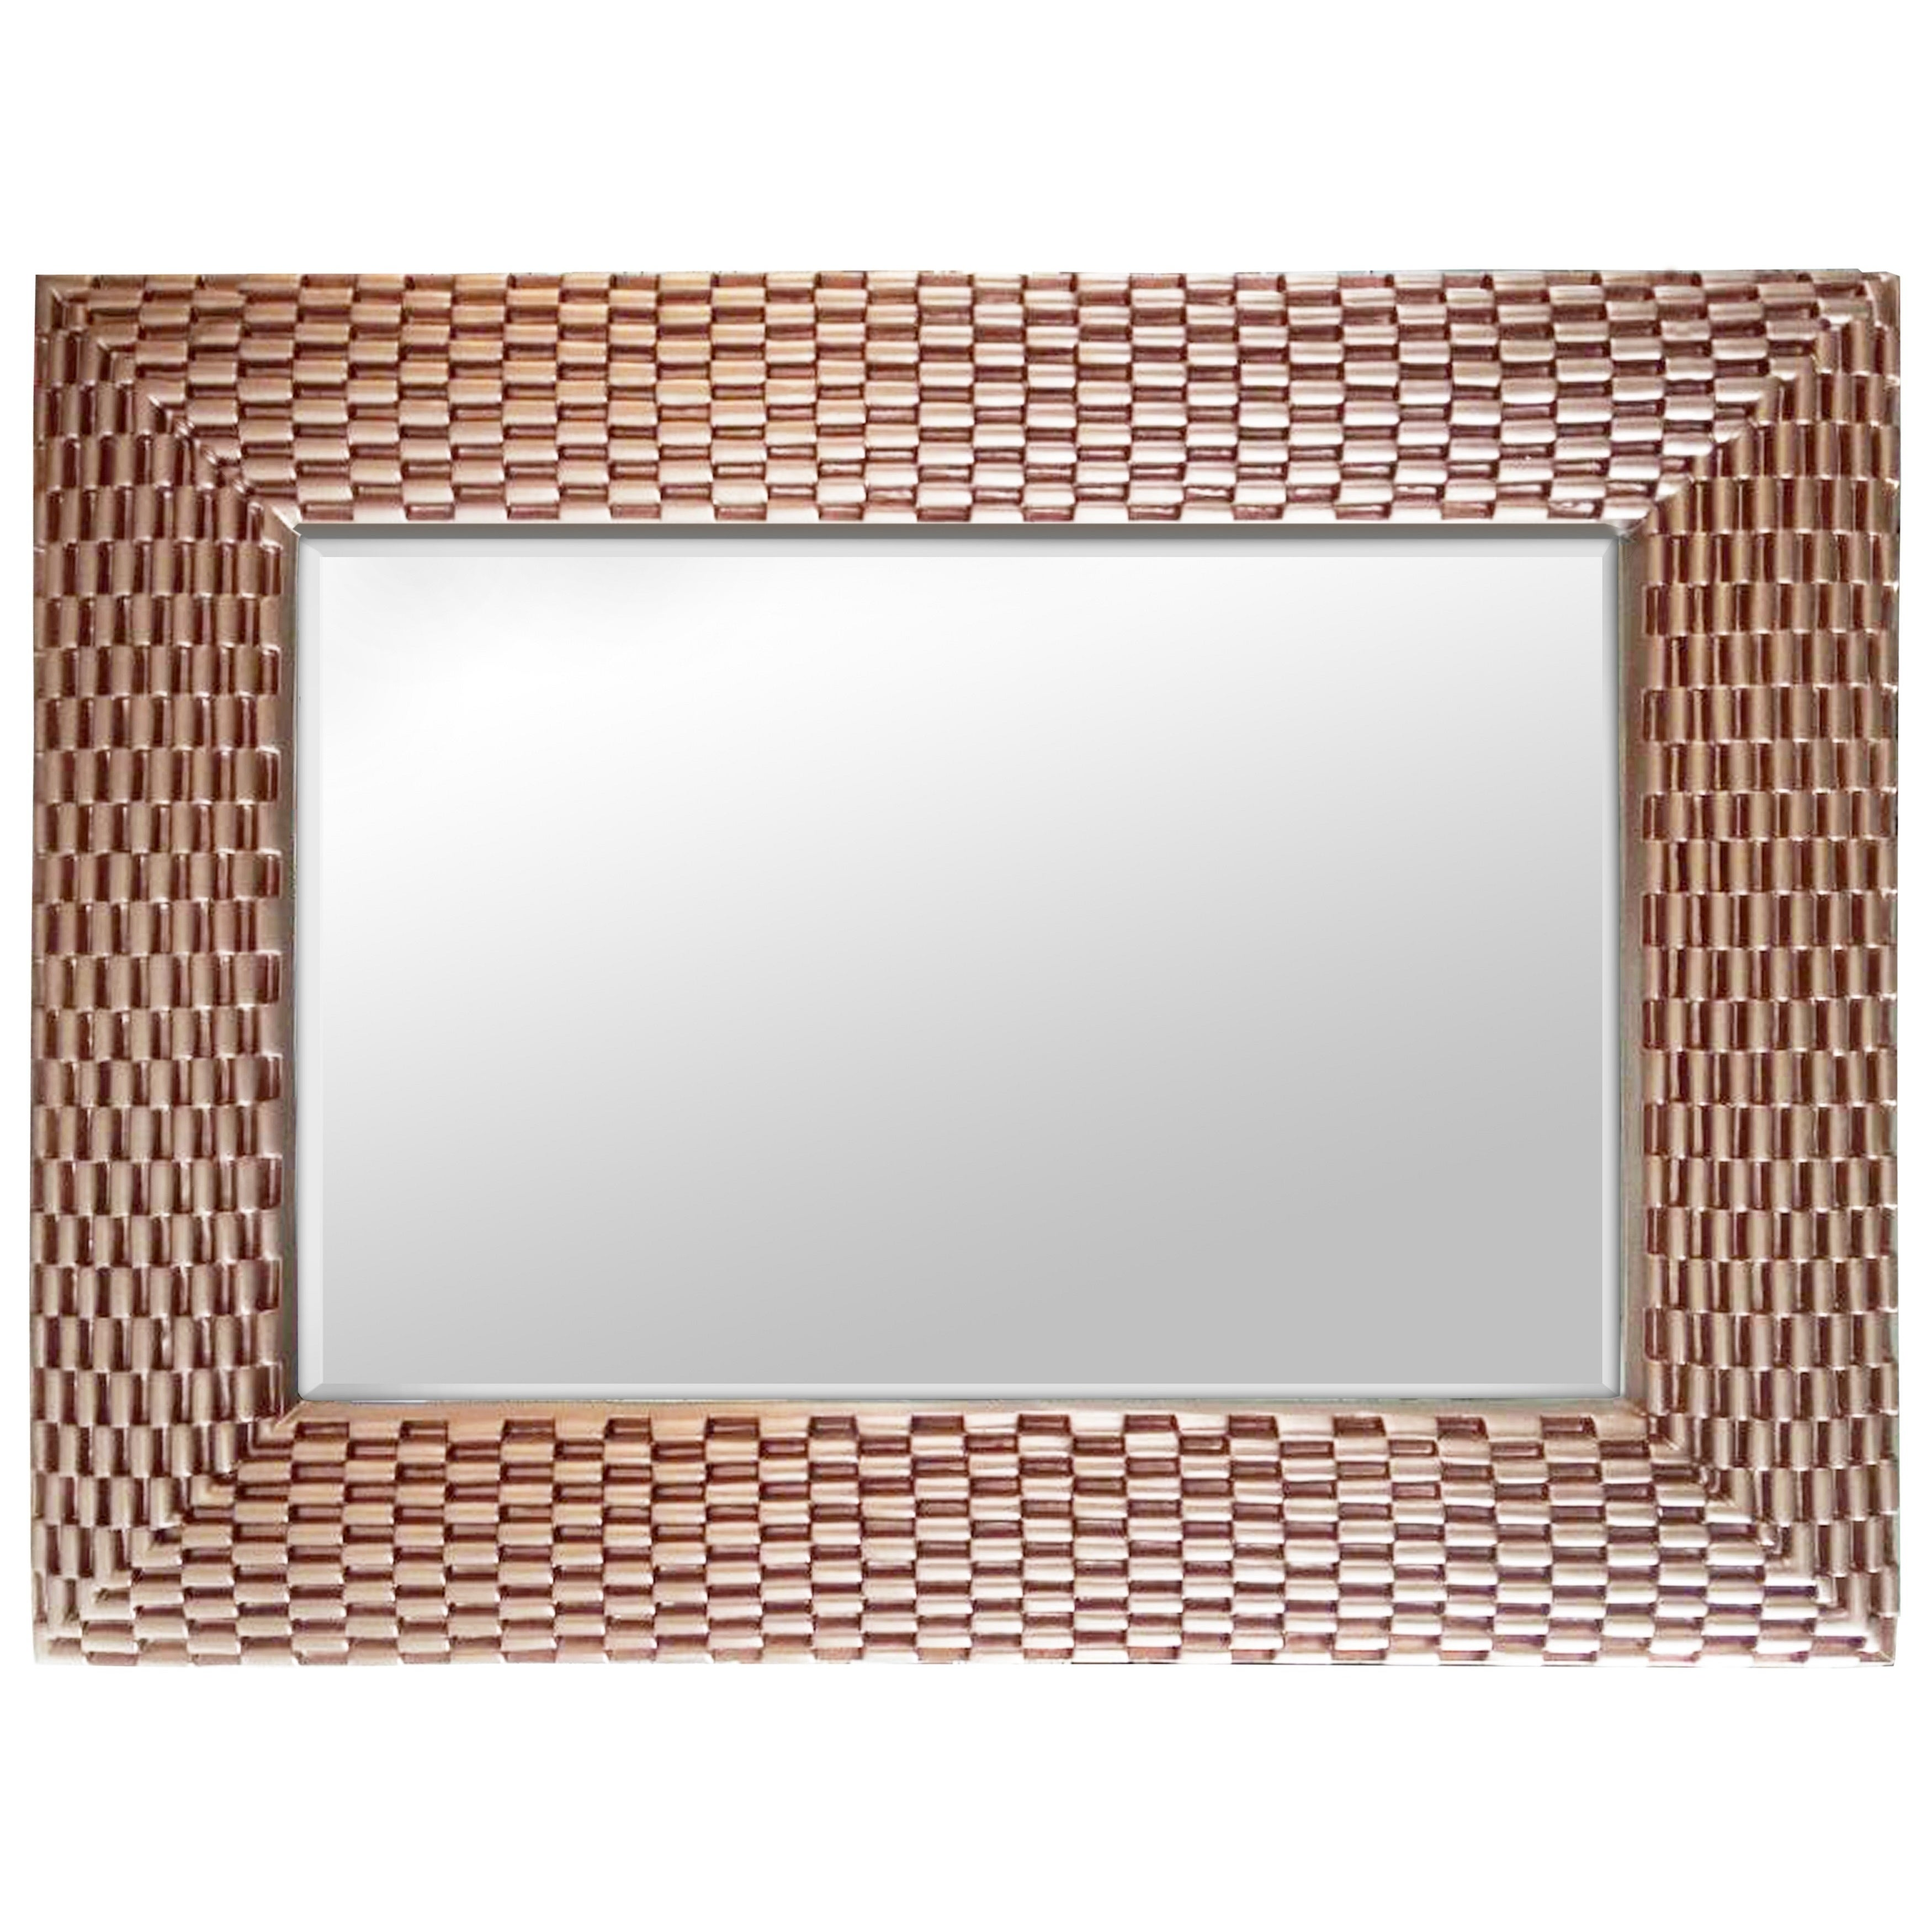 Shop Rose Gold Weave Large Rectangle Wall Mirror Copper On Sale Overstock 15949568